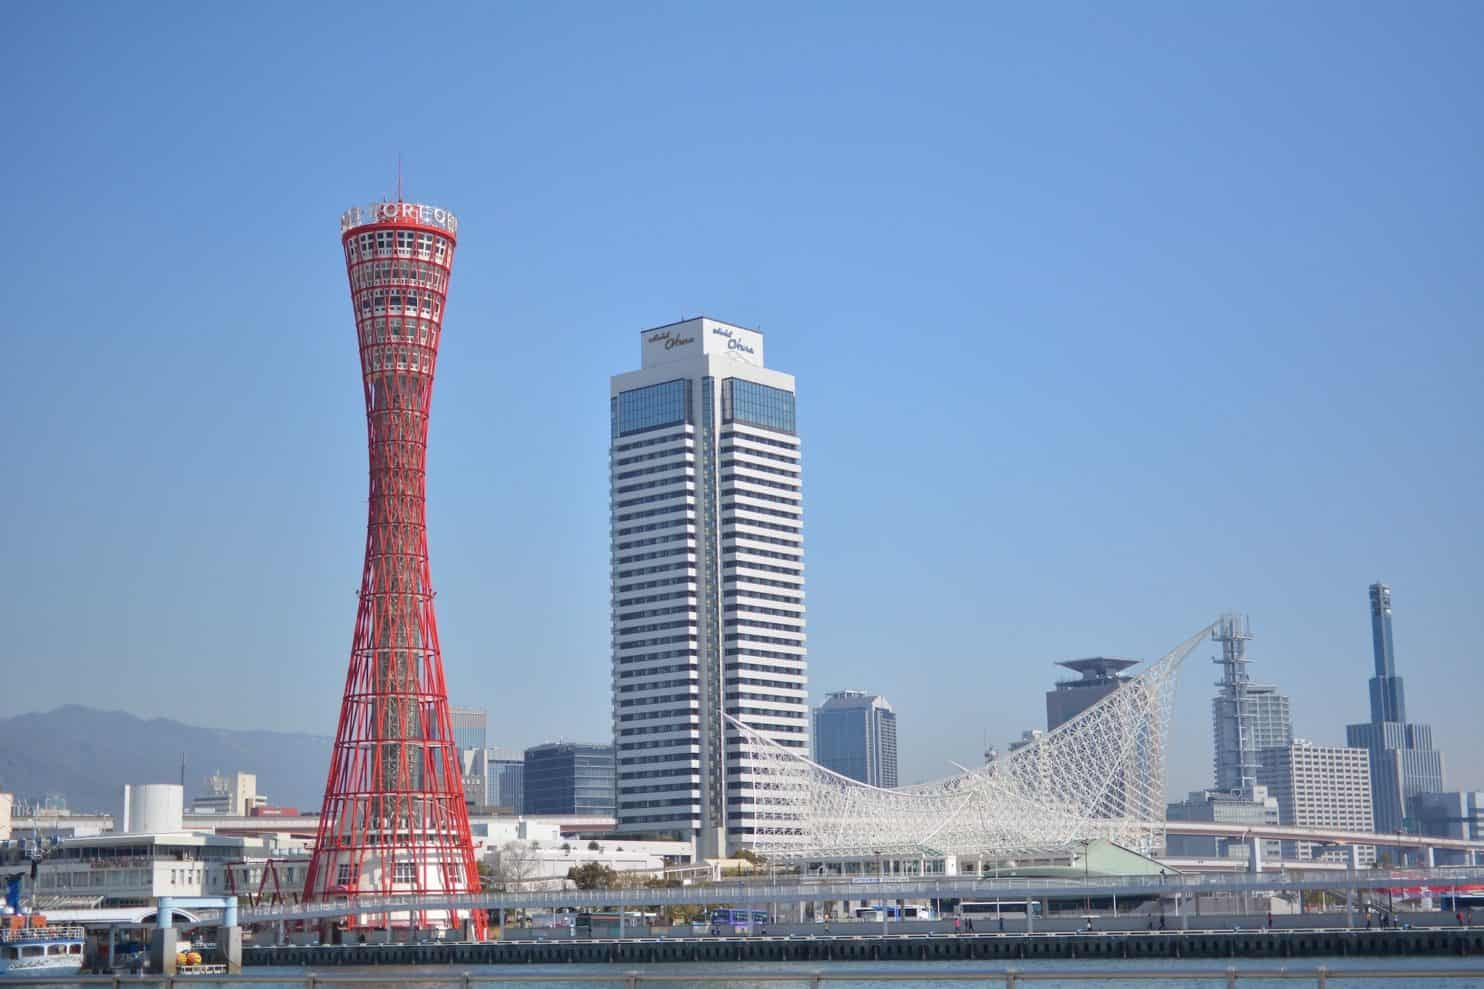 Things to do in Kobe, Japan